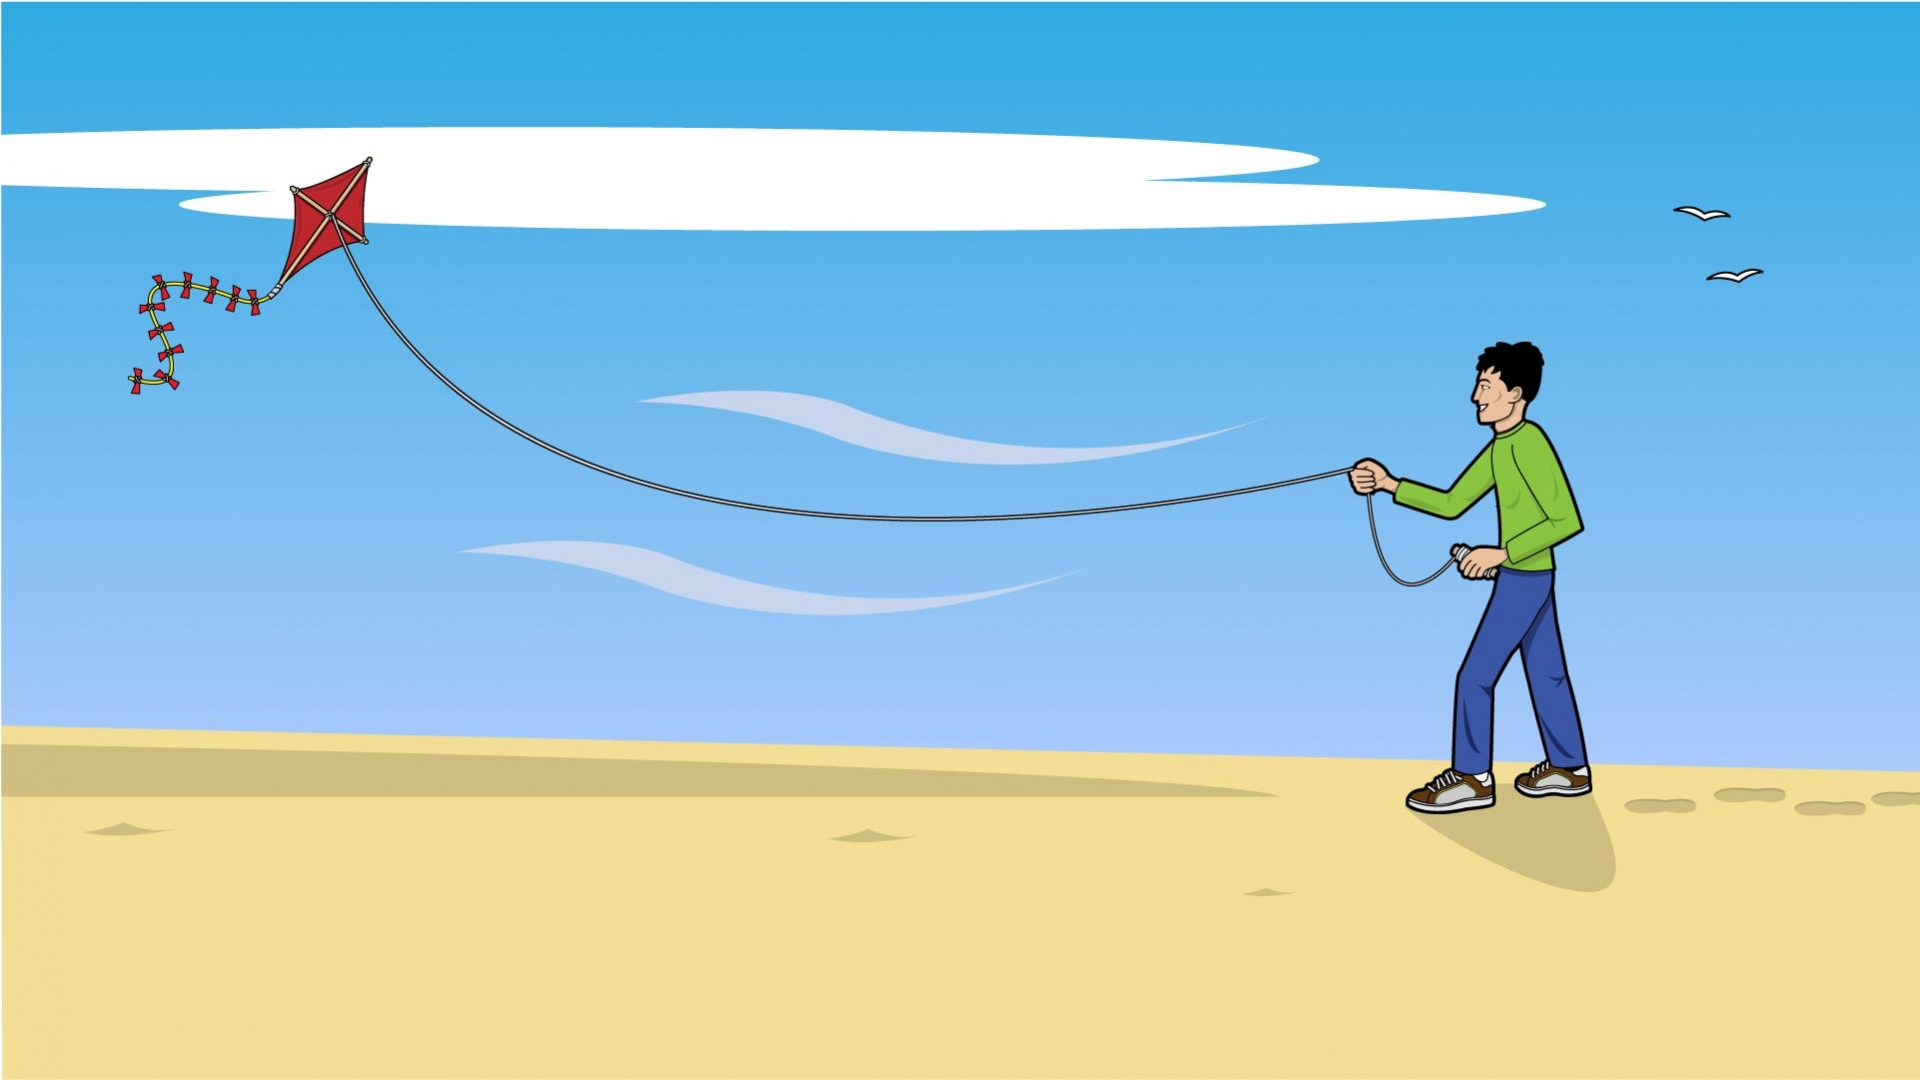 wallpaper kite cartoon - photo #37